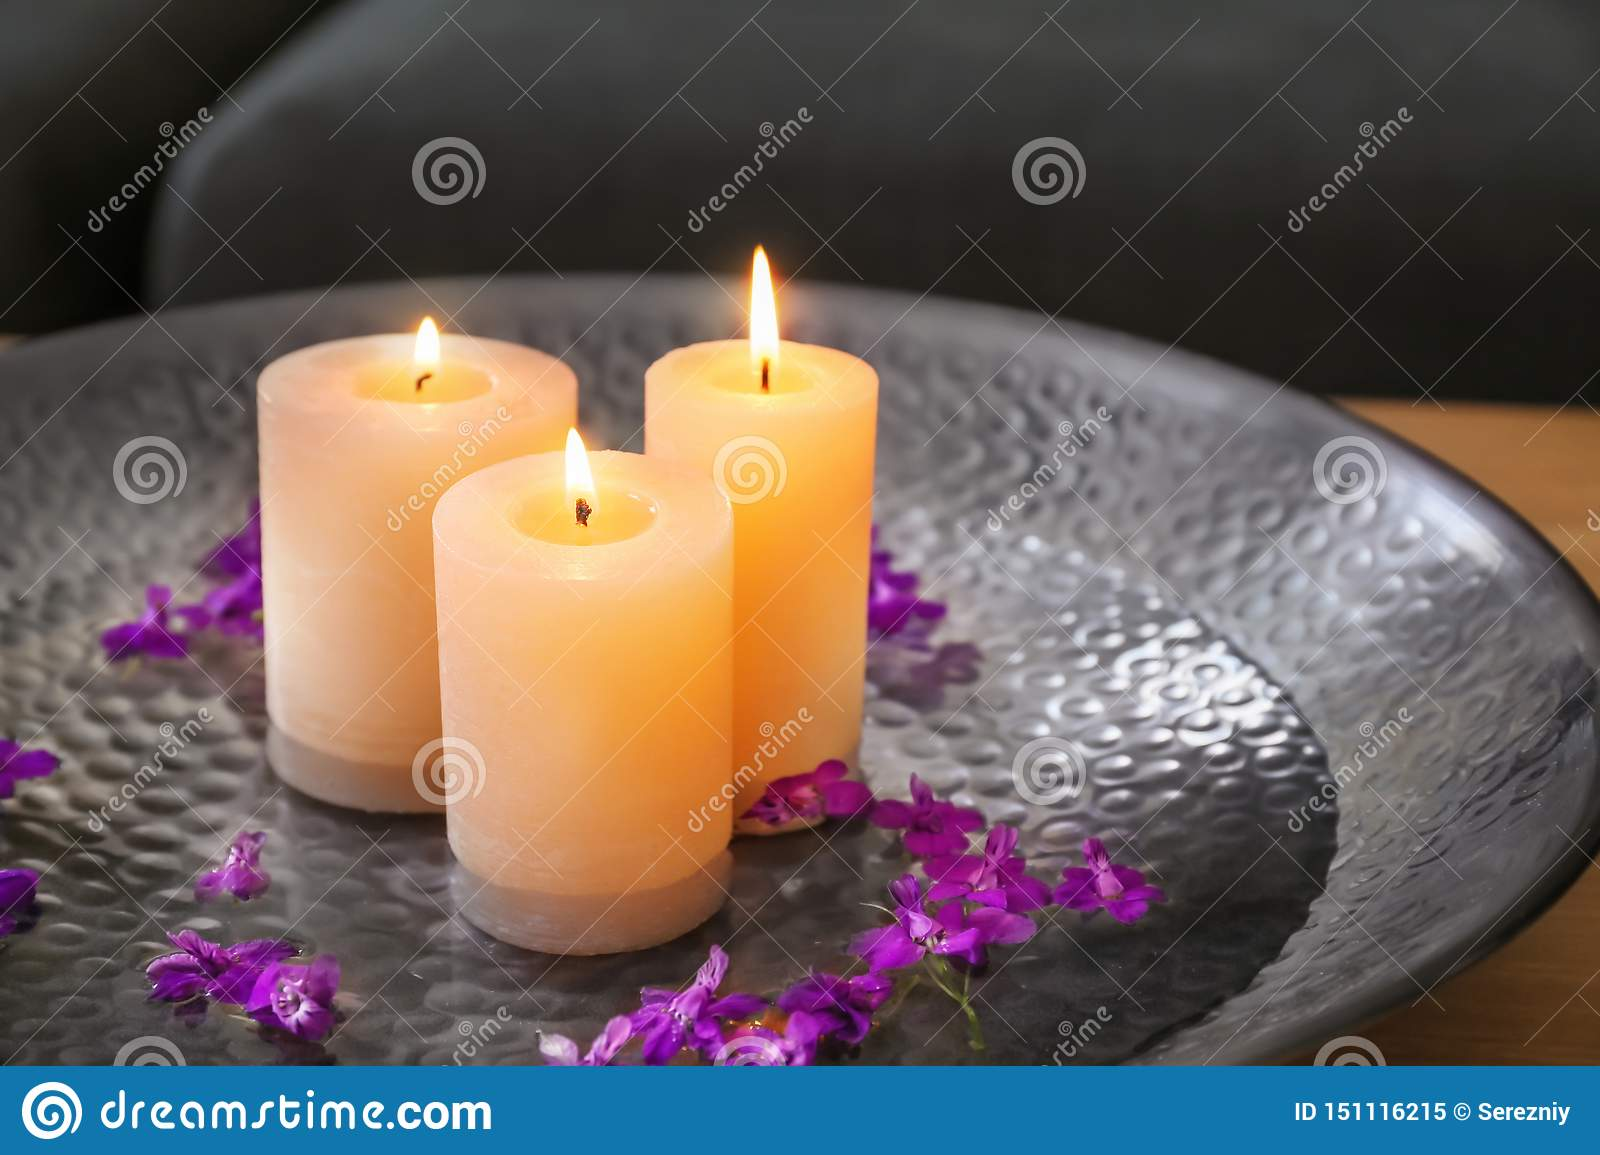 Plate With Burning Wax Candles Water And Flower Petals On Table Stock Image Image Of Design Candles 151116215,Luxury 5 Bedroom House Plans Single Story 3d